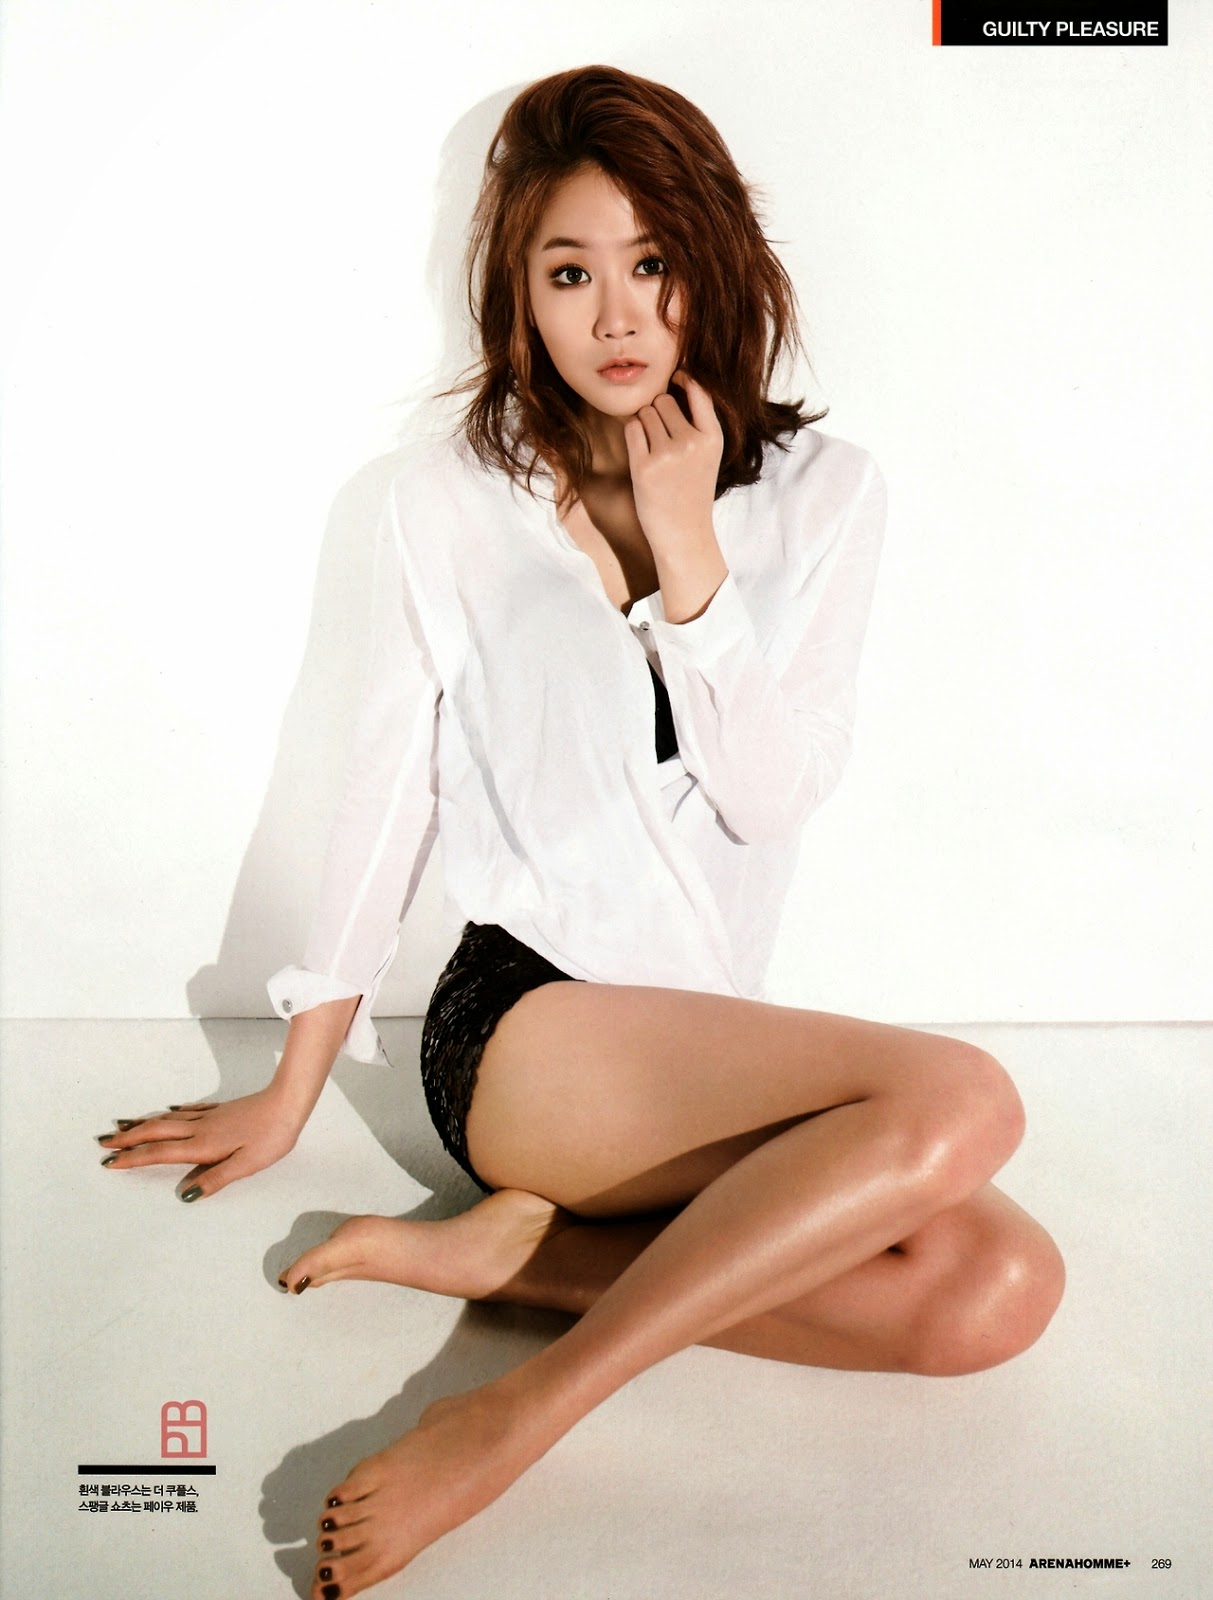 Soyu - Arena Homme Plus Magazine May Issue 2014